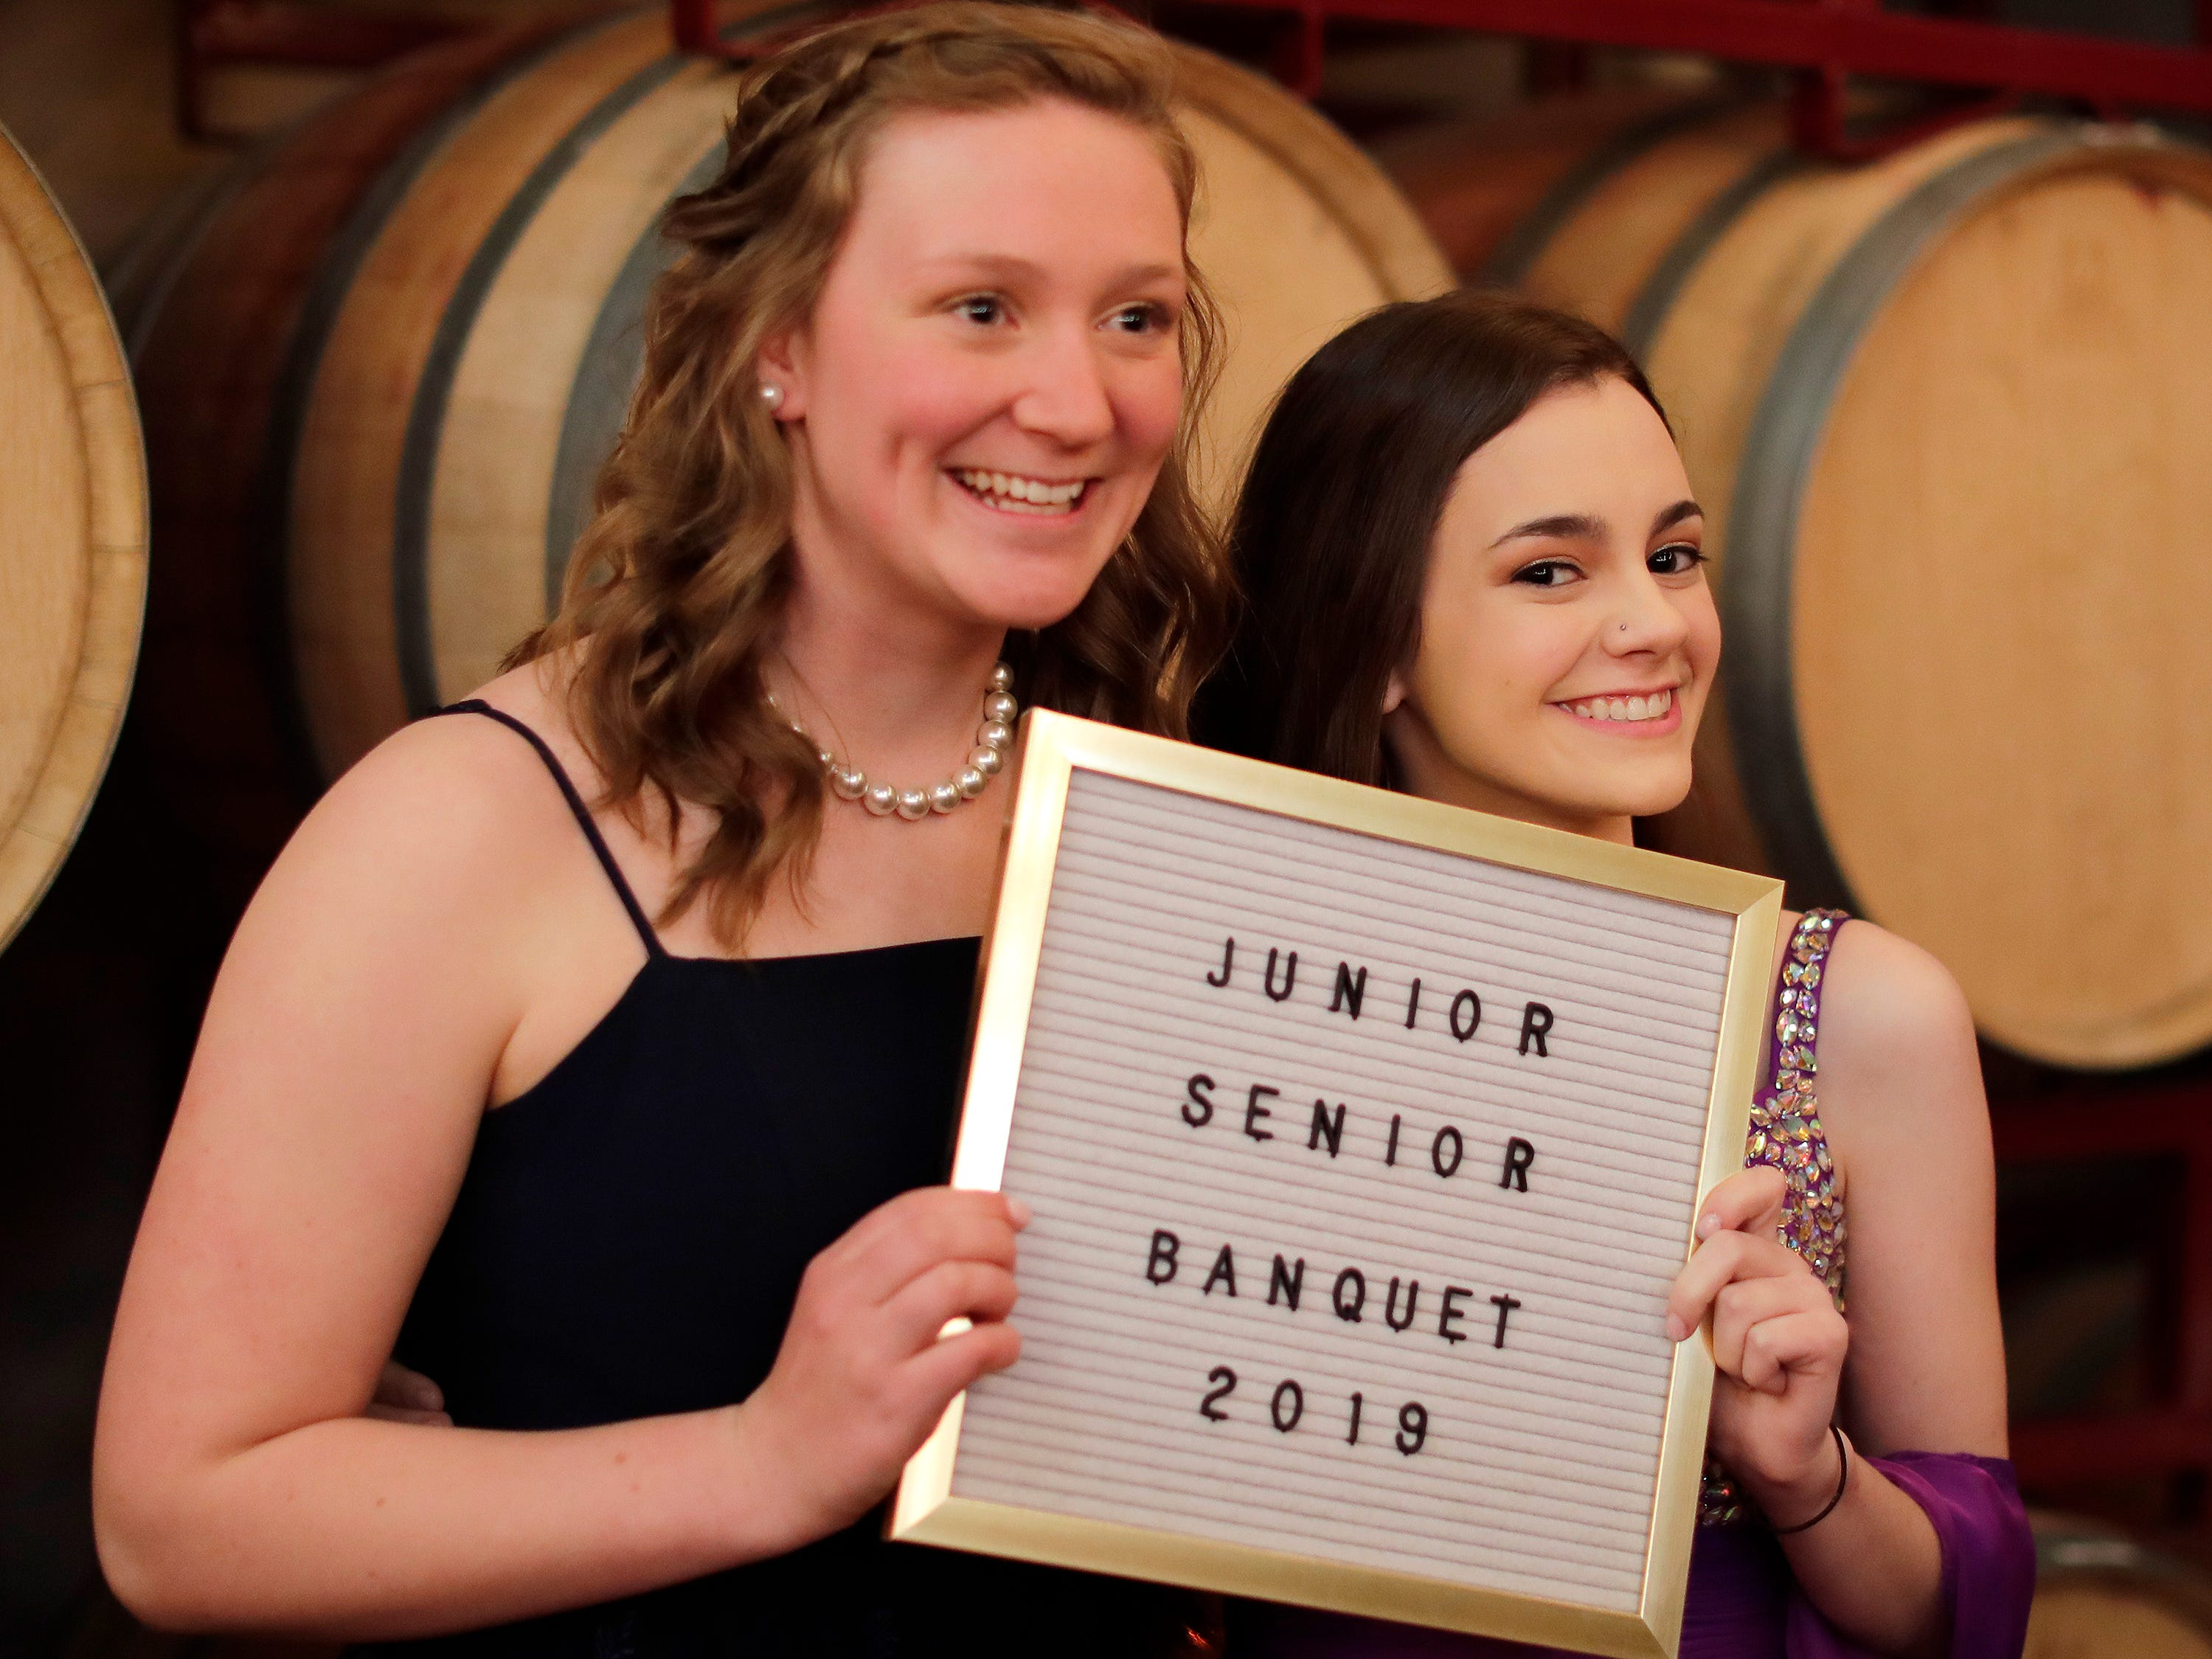 Ellie Steenwyk, left, and Annie Cornette pose at the Sheboygan Christian Junior-Senior Banquet, Friday, May 3, 2019, at The Blind Horse, in Kohler, Wis.